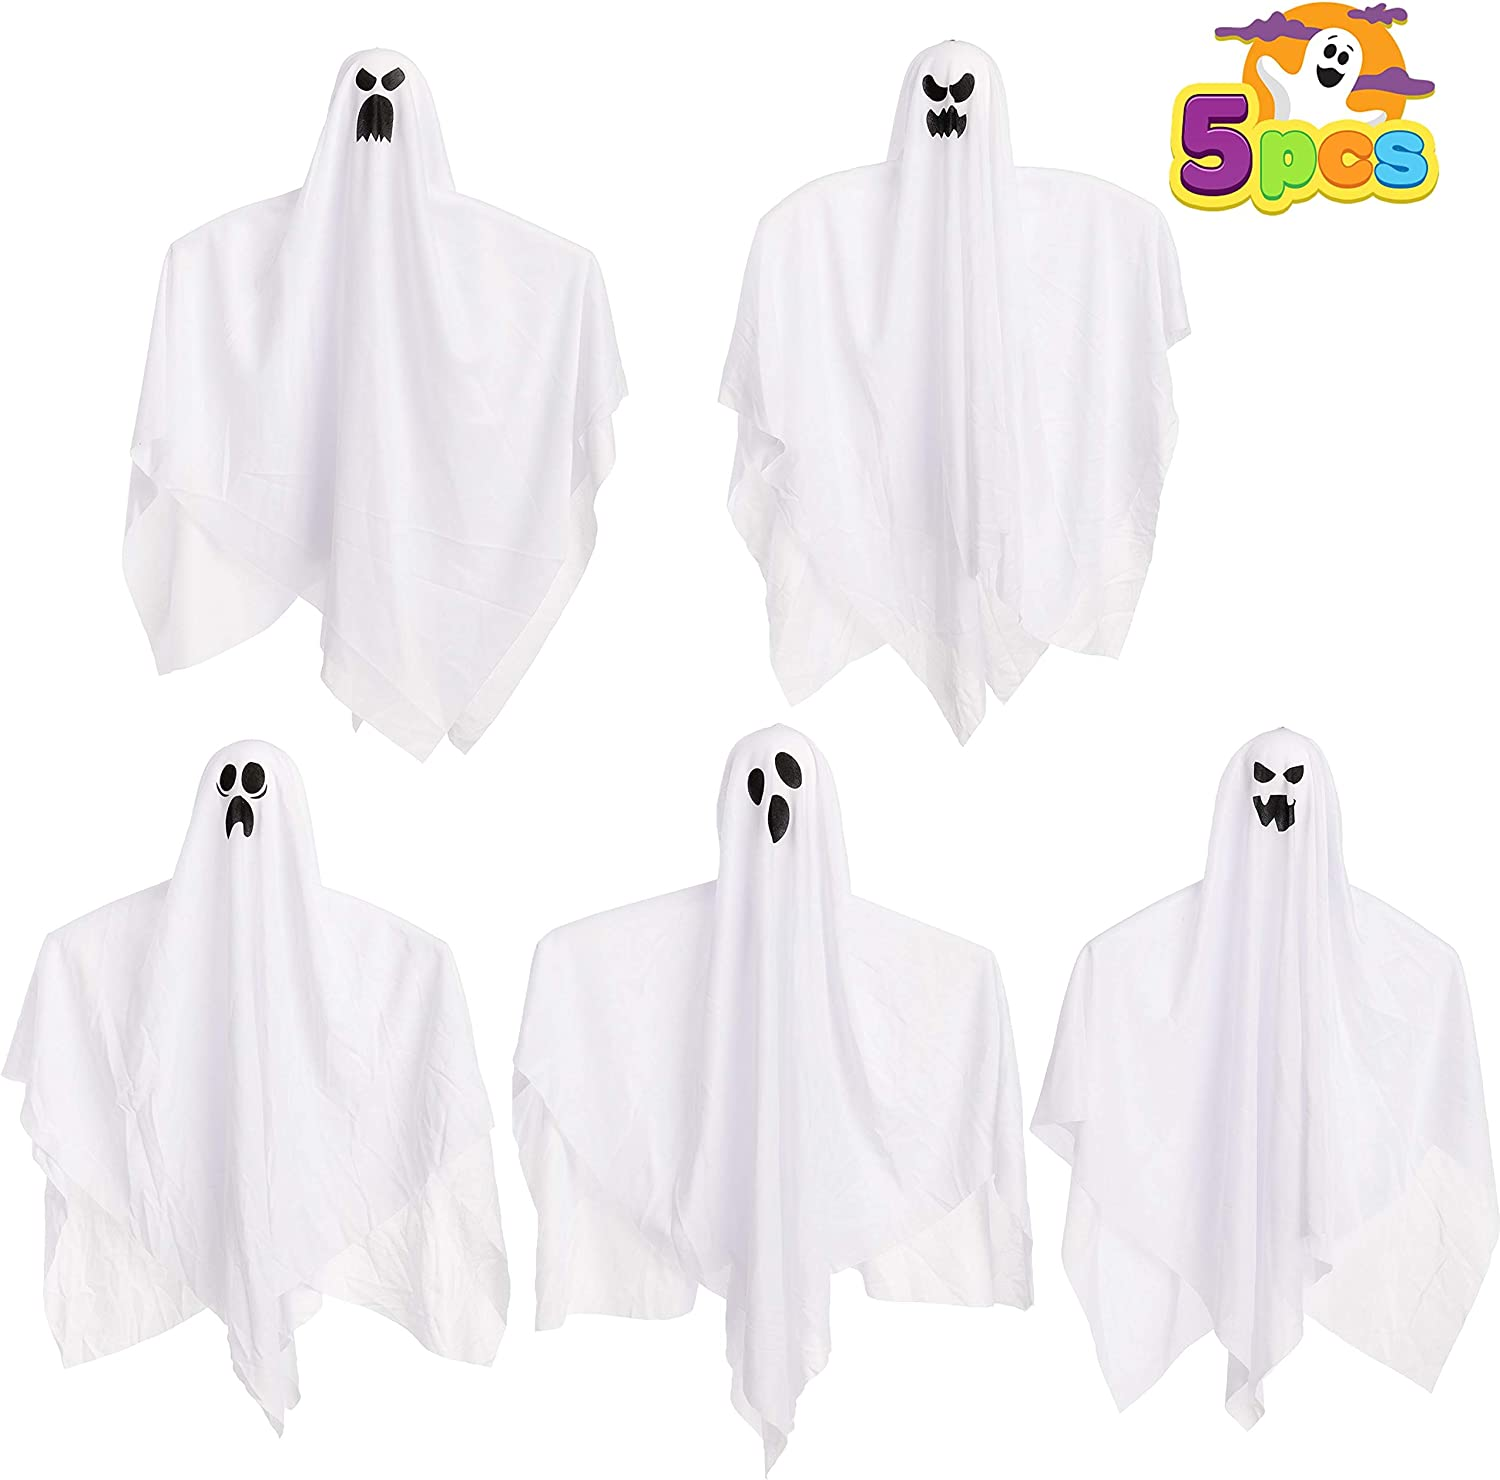 """27.5"""" Halloween Hanging Ghosts (5 Pack) for Halloween Party Decoration, Cute Flying Ghost for Front Yard Patio Lawn Garden Party Décor and Holiday Halloween Hanging Decorations"""